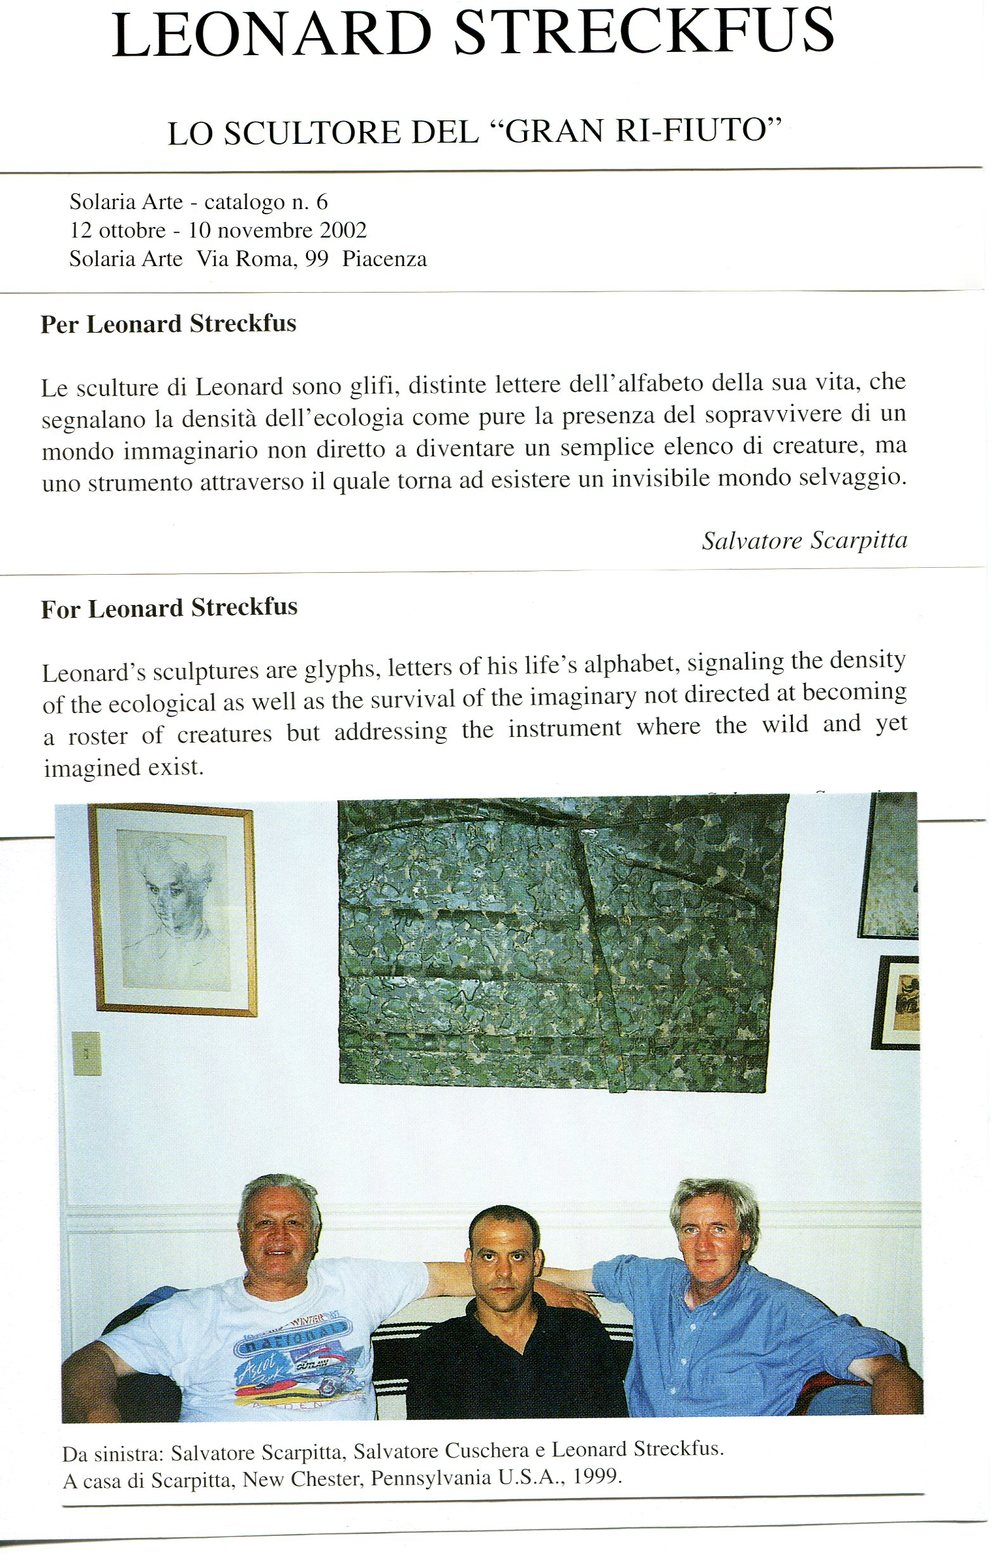 "From the catalog for ""Leonard Streckfus: l'artista del' gran rifiuto,"" Galleria Solaria Arte, Piacenza, Italy, 2002. Left to right, Salvatore Scarpitta, Salvatore Cuschera and Leonard Streckfus at Scarpitta's home in Newchester, Pennsylvania."